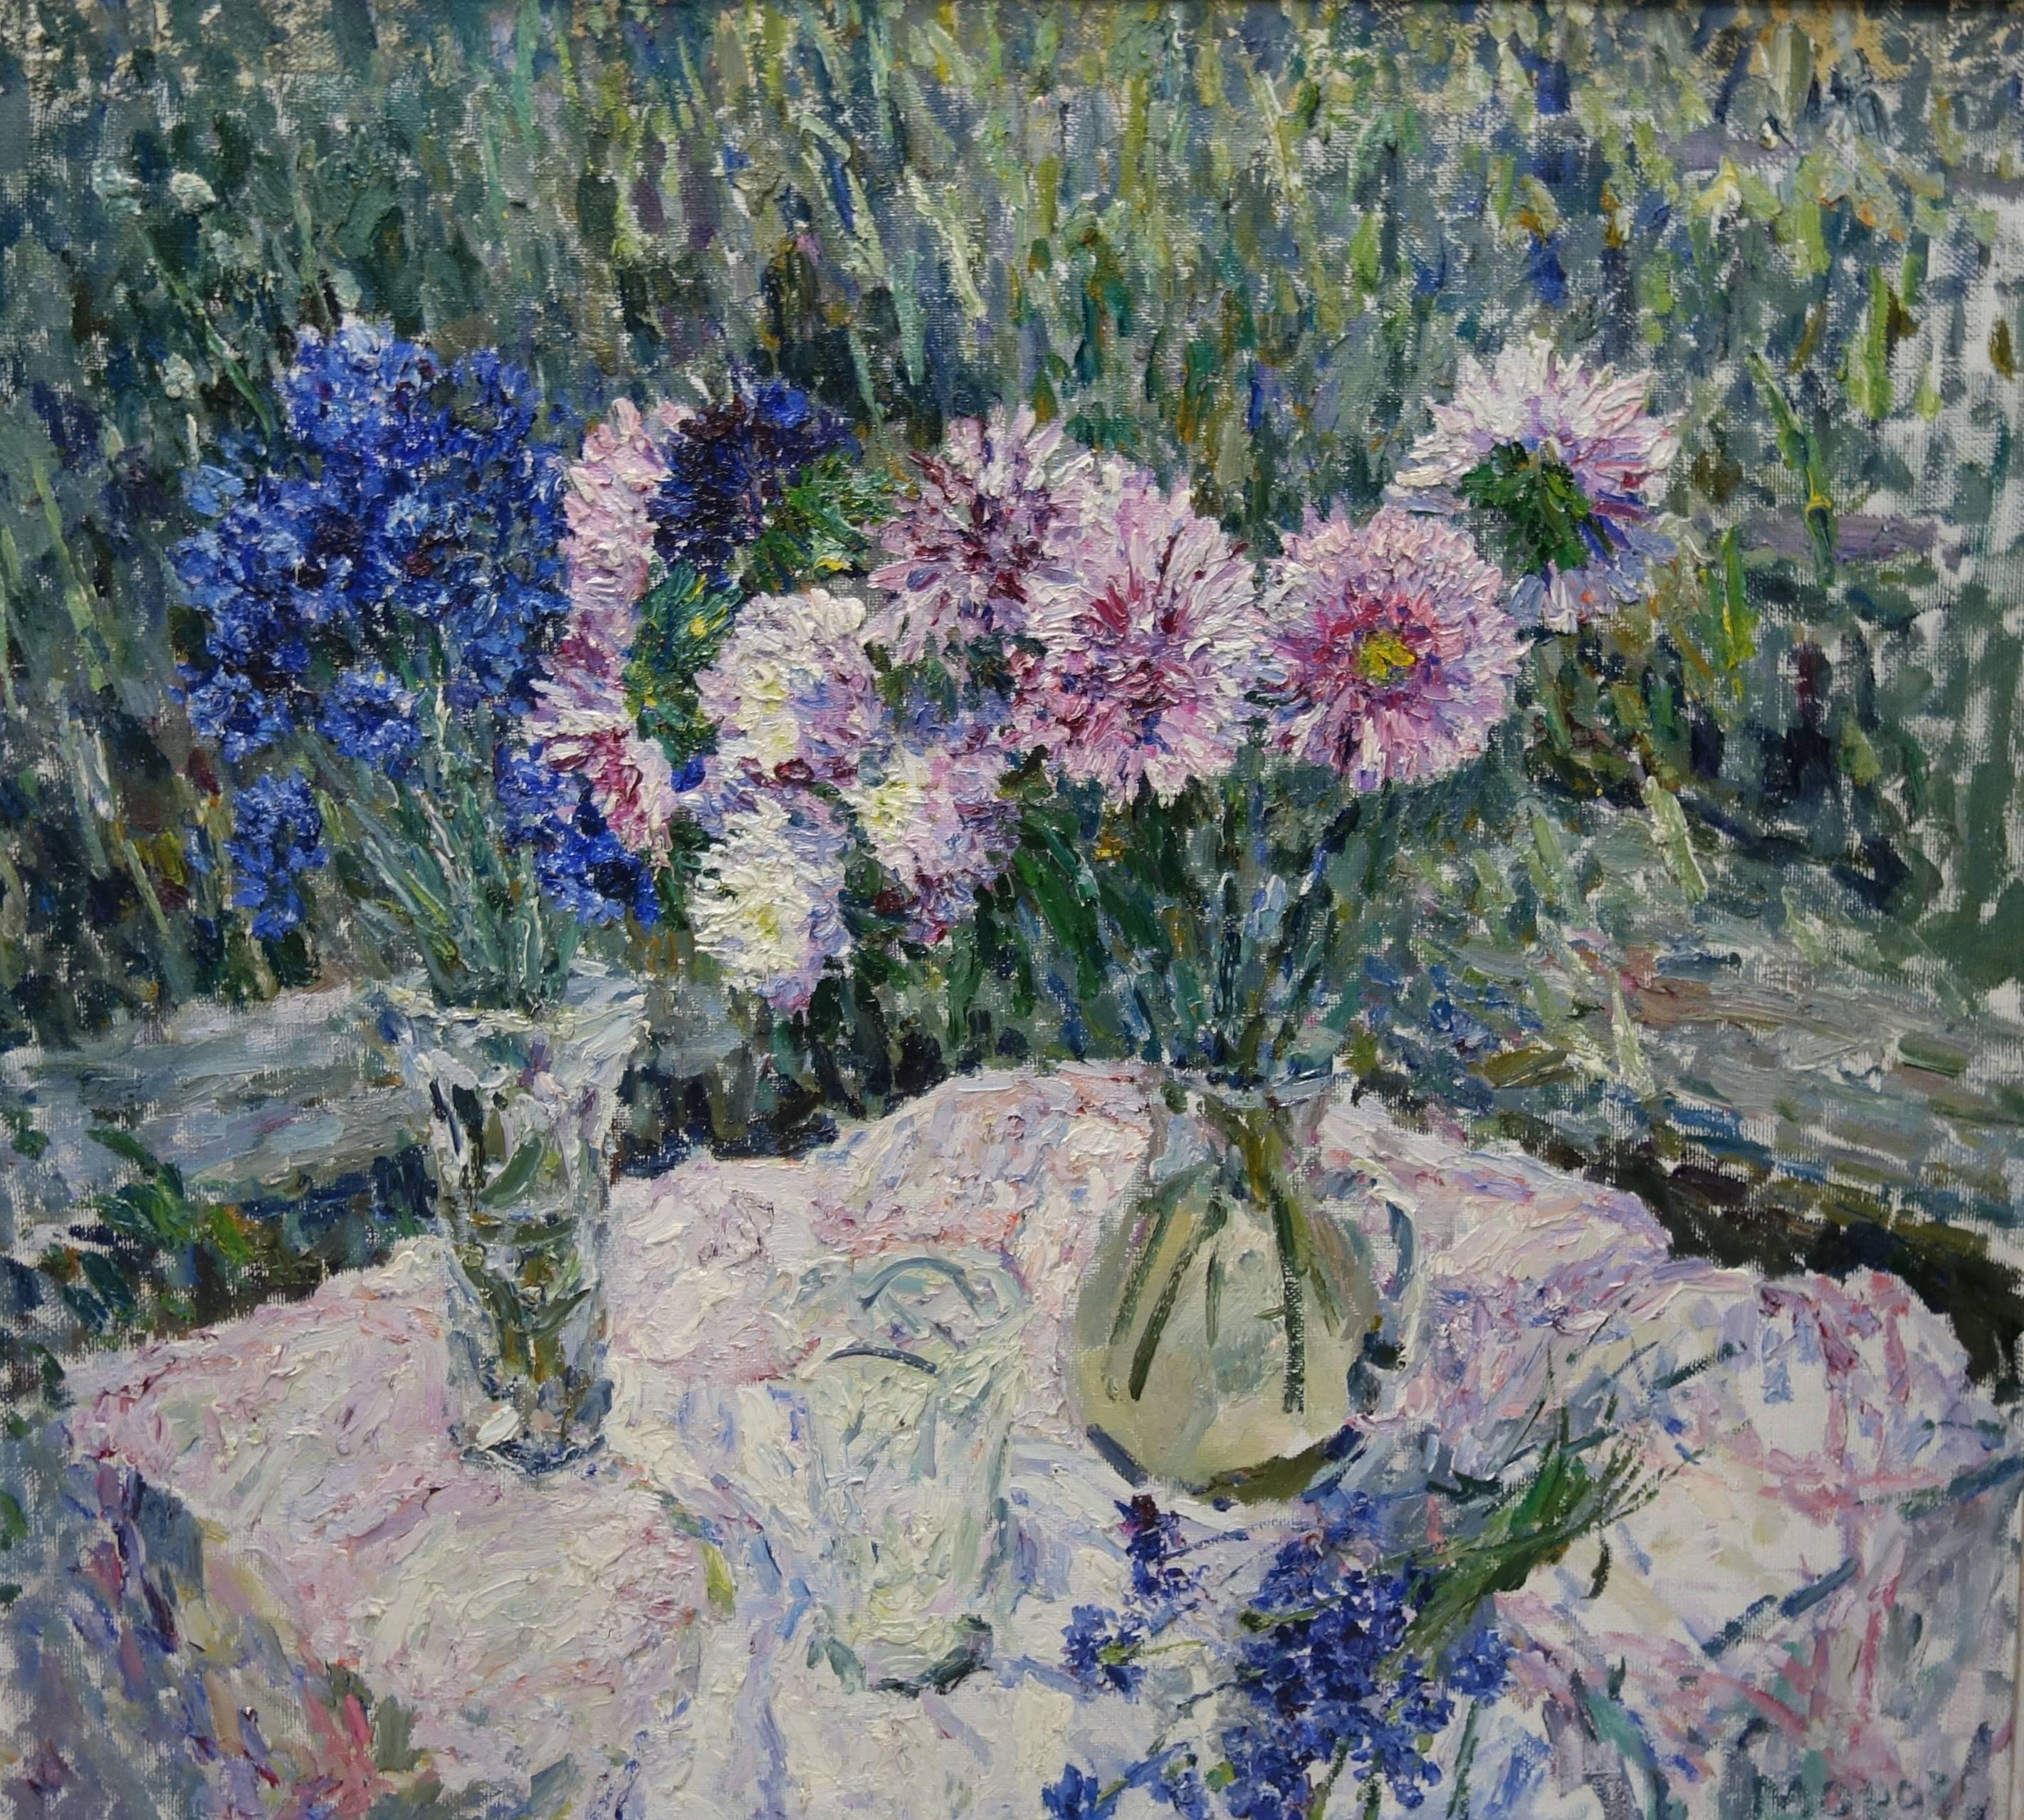 Flowers on the table, Blue,Blue,Pink,20th,cm. 100 x 90